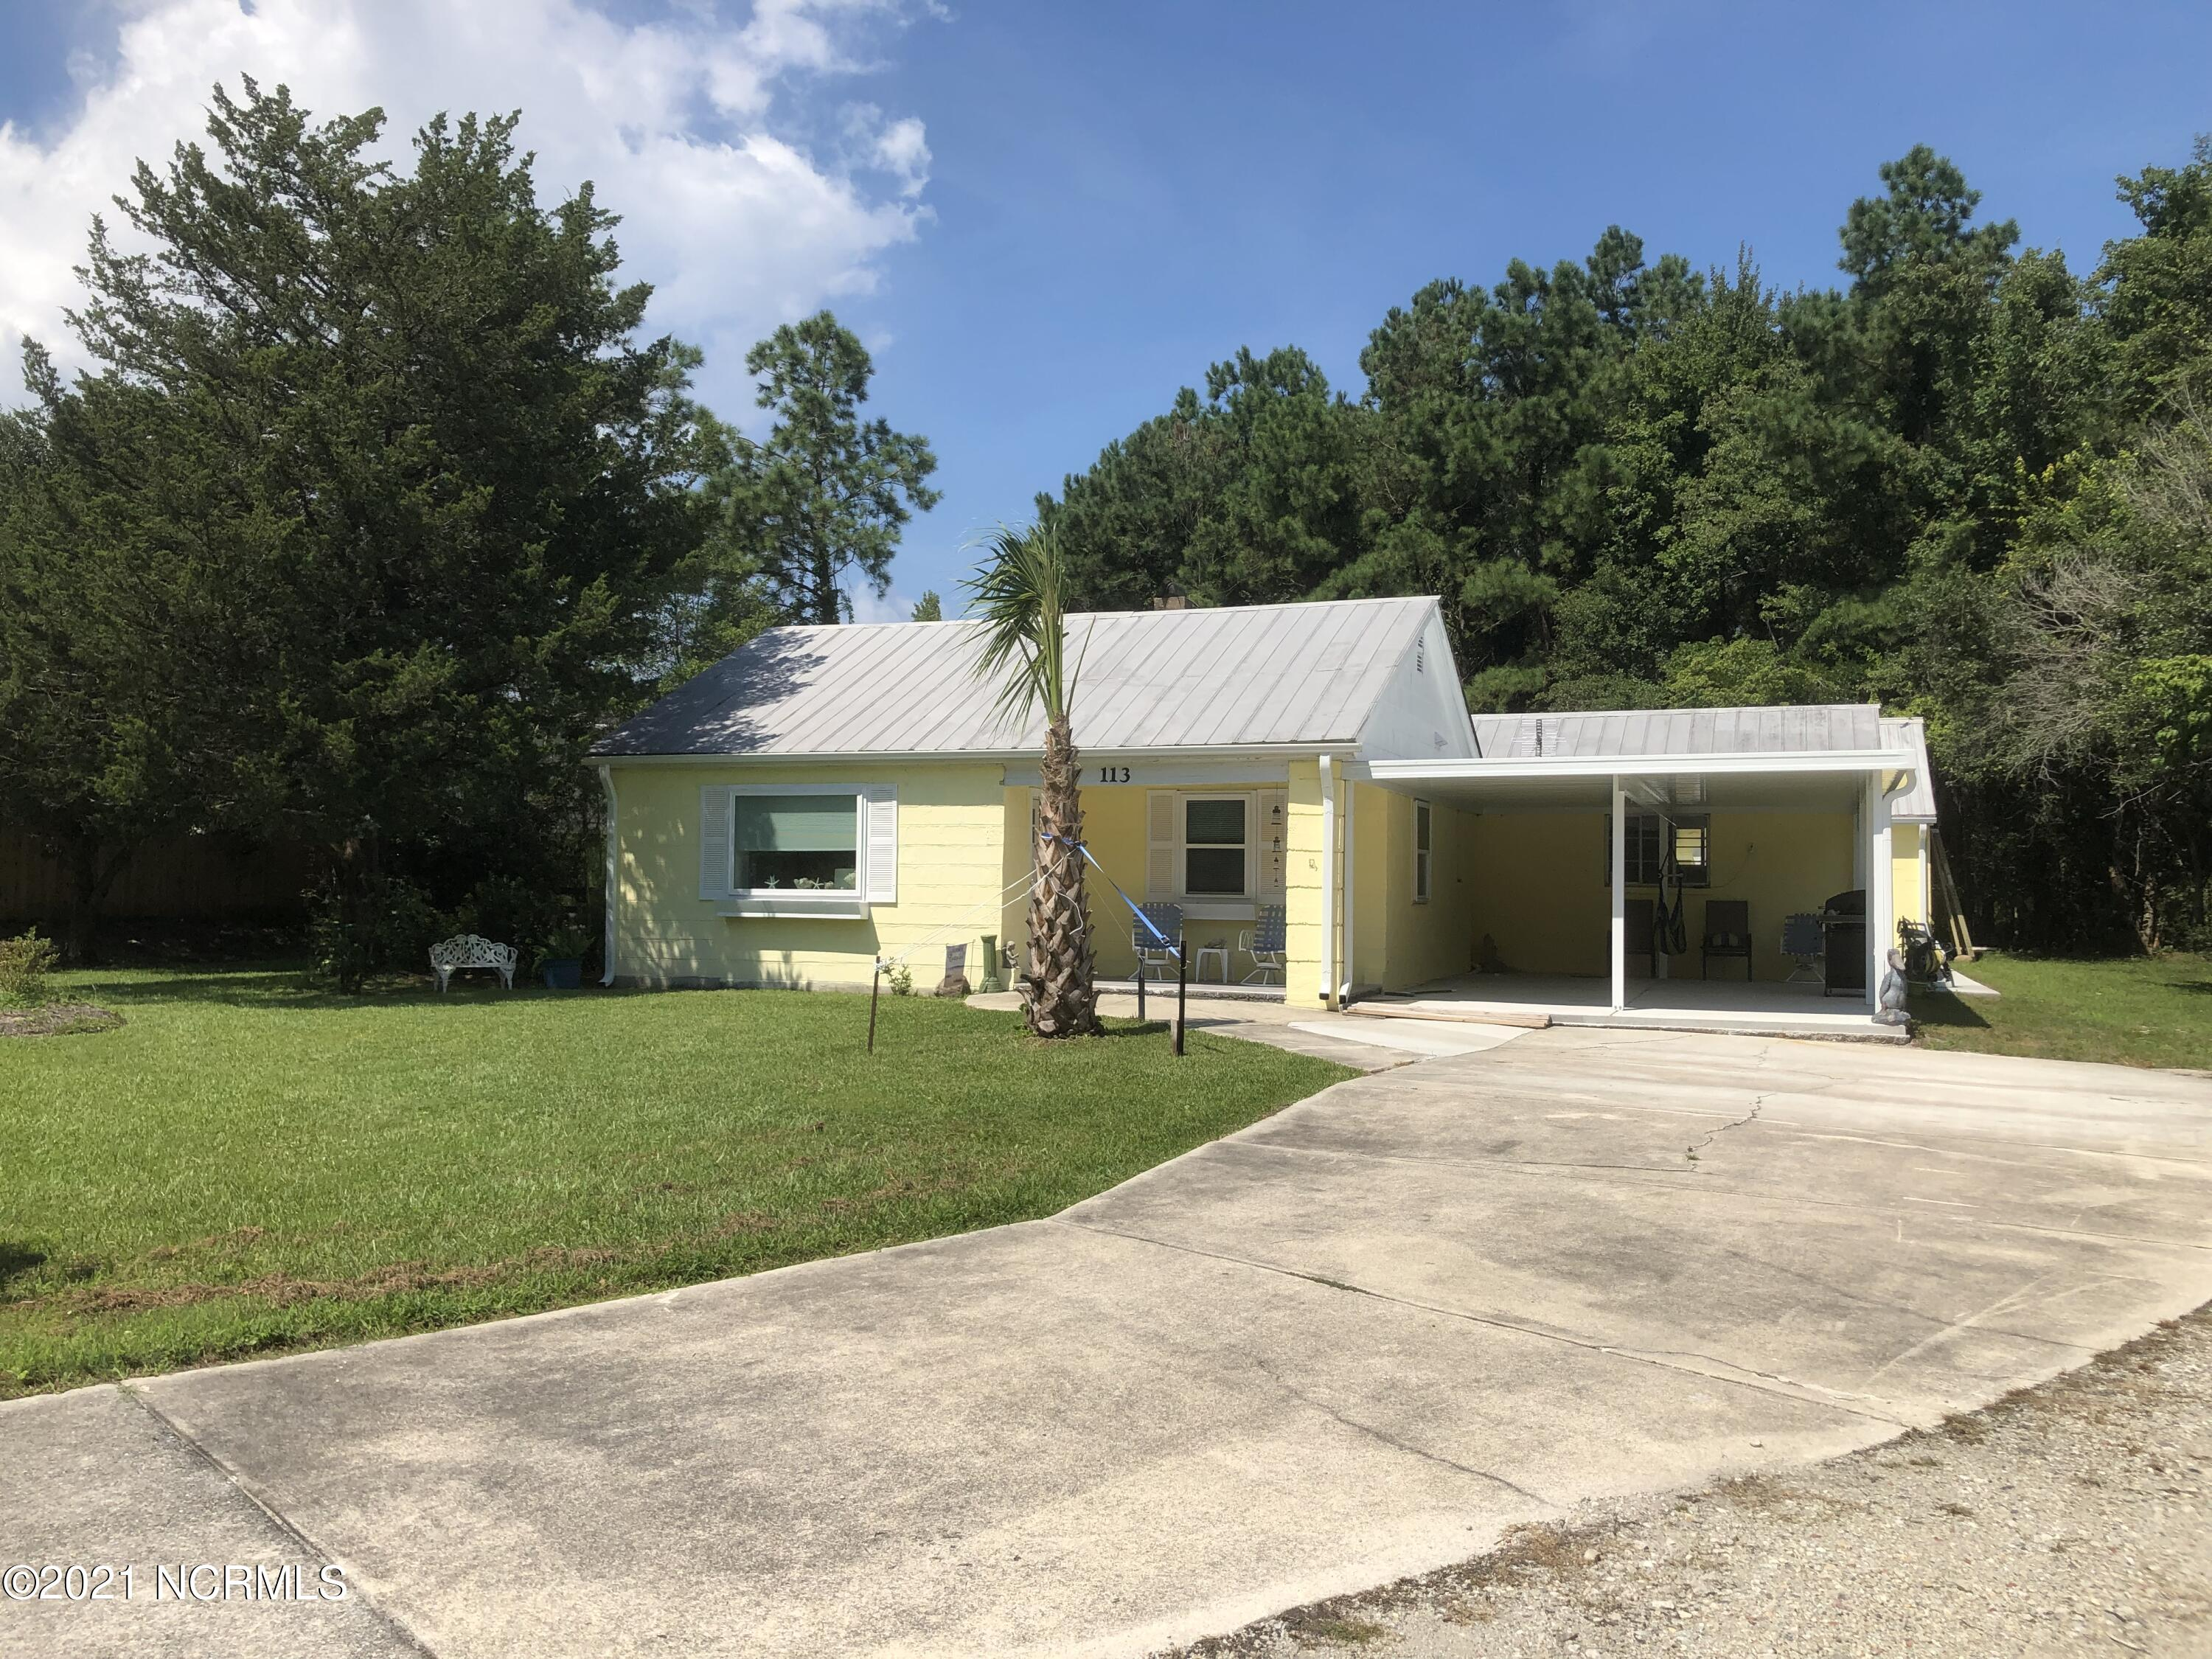 This 2 -3 bedroom house was built to withstand hurricanes in this coastal town with it's concrete block construction and metal roof! Home has recently been renovated and has new appliances . Has 2 carports and nice workshop building out back. Close proximity to the area beaches make this home attractive as a ''get away''! Added plus is the four acres that are included! Great potential.